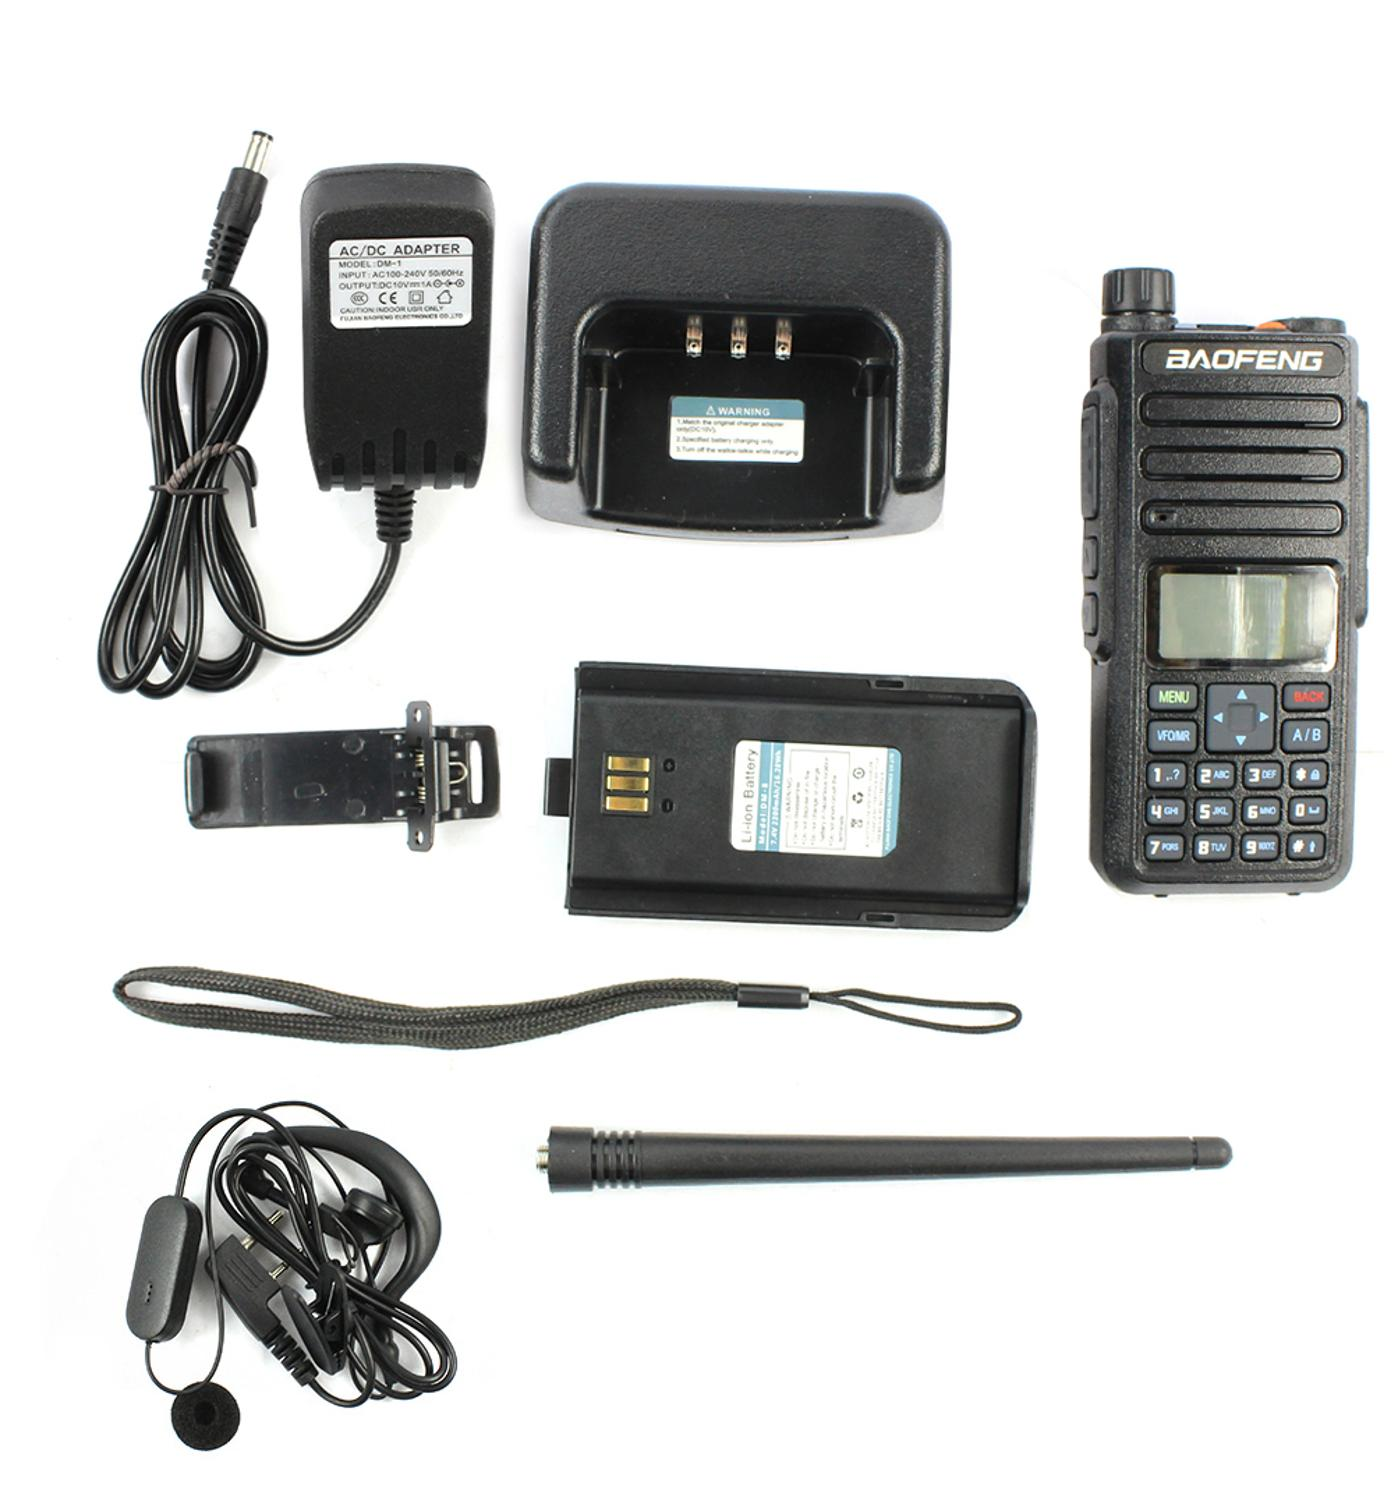 Baofeng DM-1801 Dual Band Dual Time Slot DMR Digital/Analog 2Way Radio 136-174/400-470MHz Walkie Talkie DMR Portable Radio